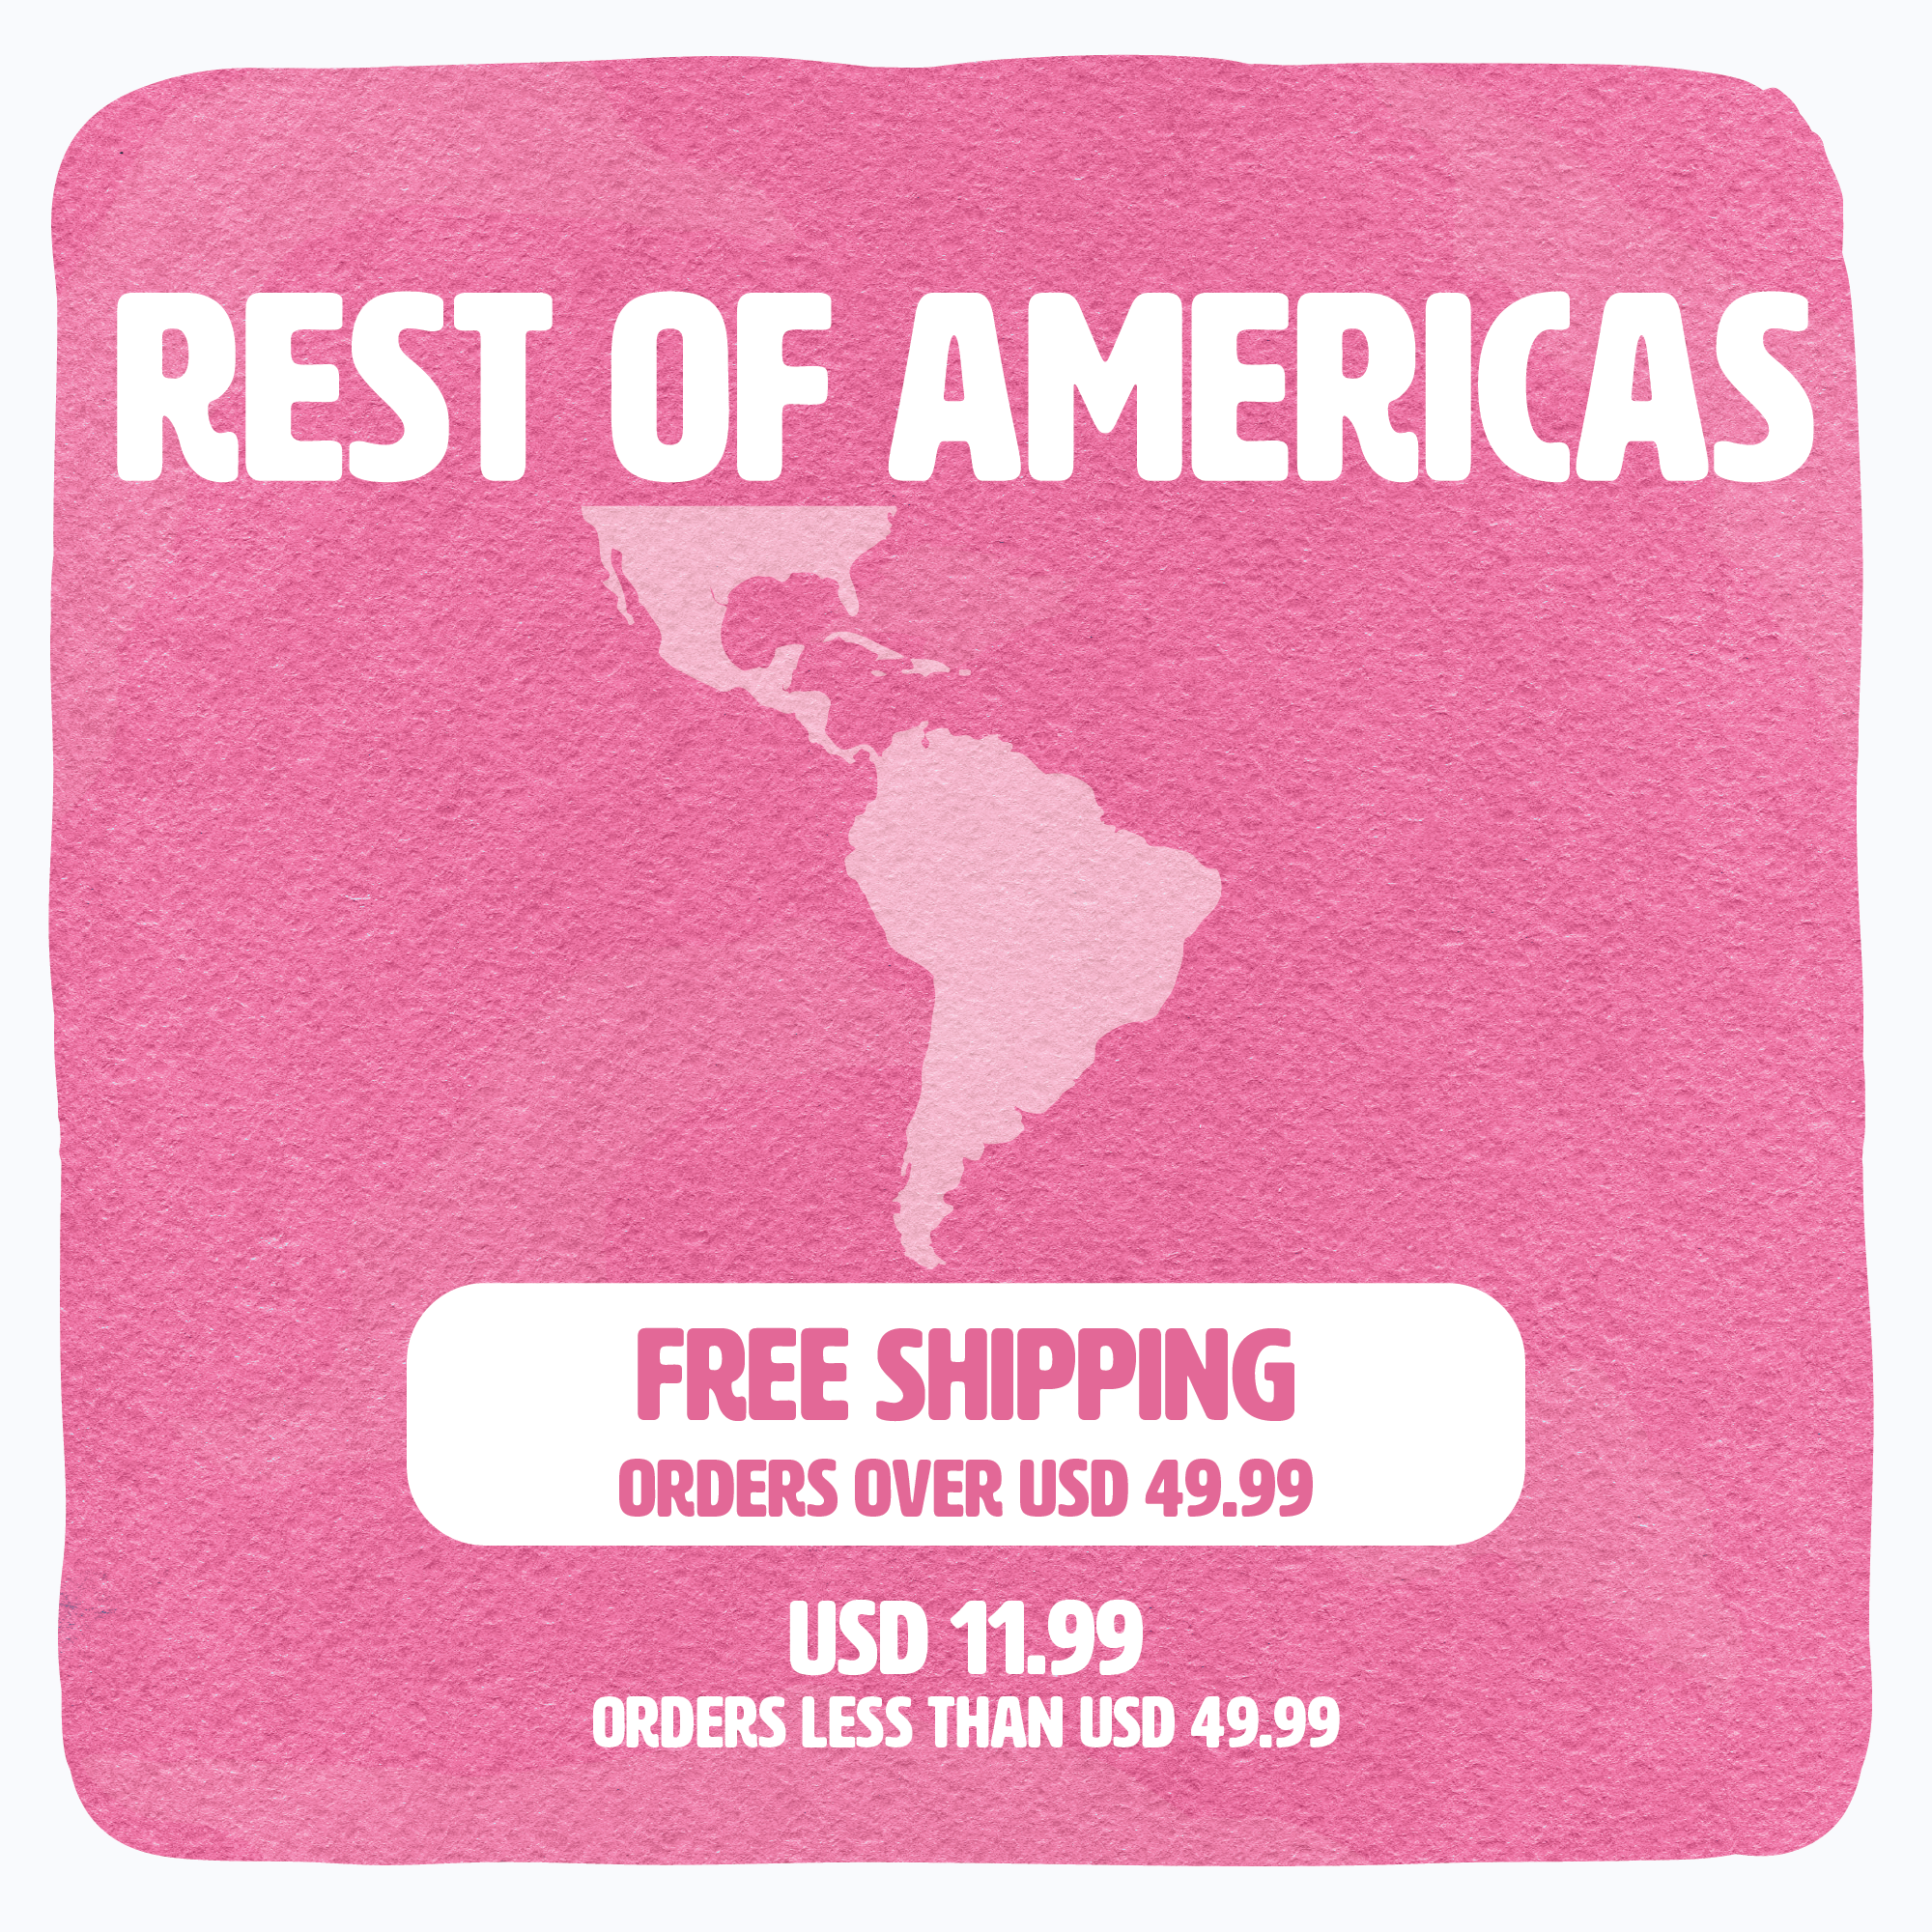 Shipping availability & conditions banner for Rest of Americas